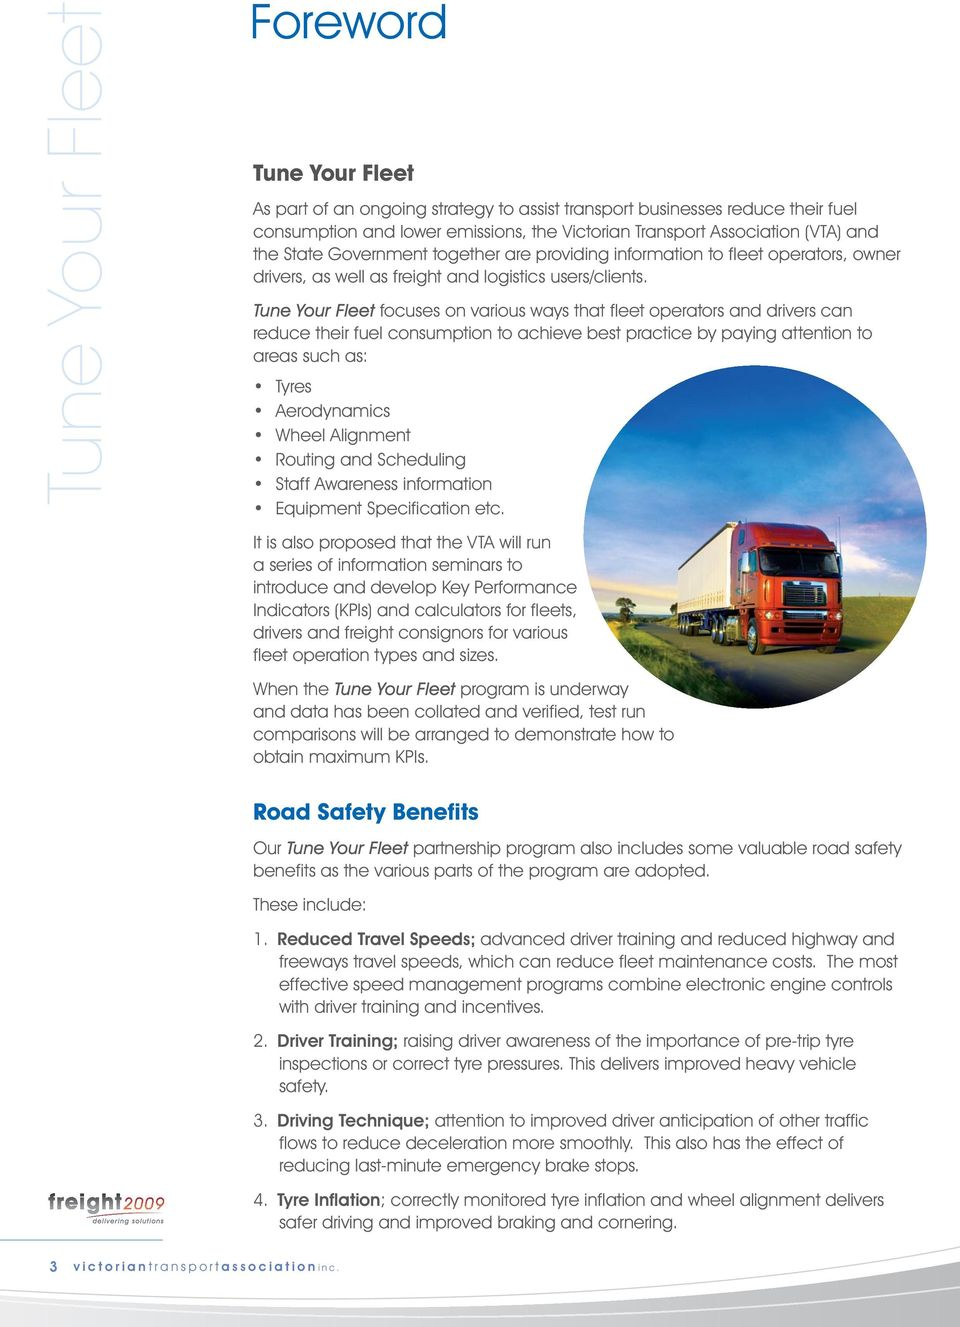 Tune Your Fleet focuses on various ways that fleet operators and drivers can reduce their fuel consumption to achieve best practice by paying attention to areas such as: Tyres Aerodynamics Wheel